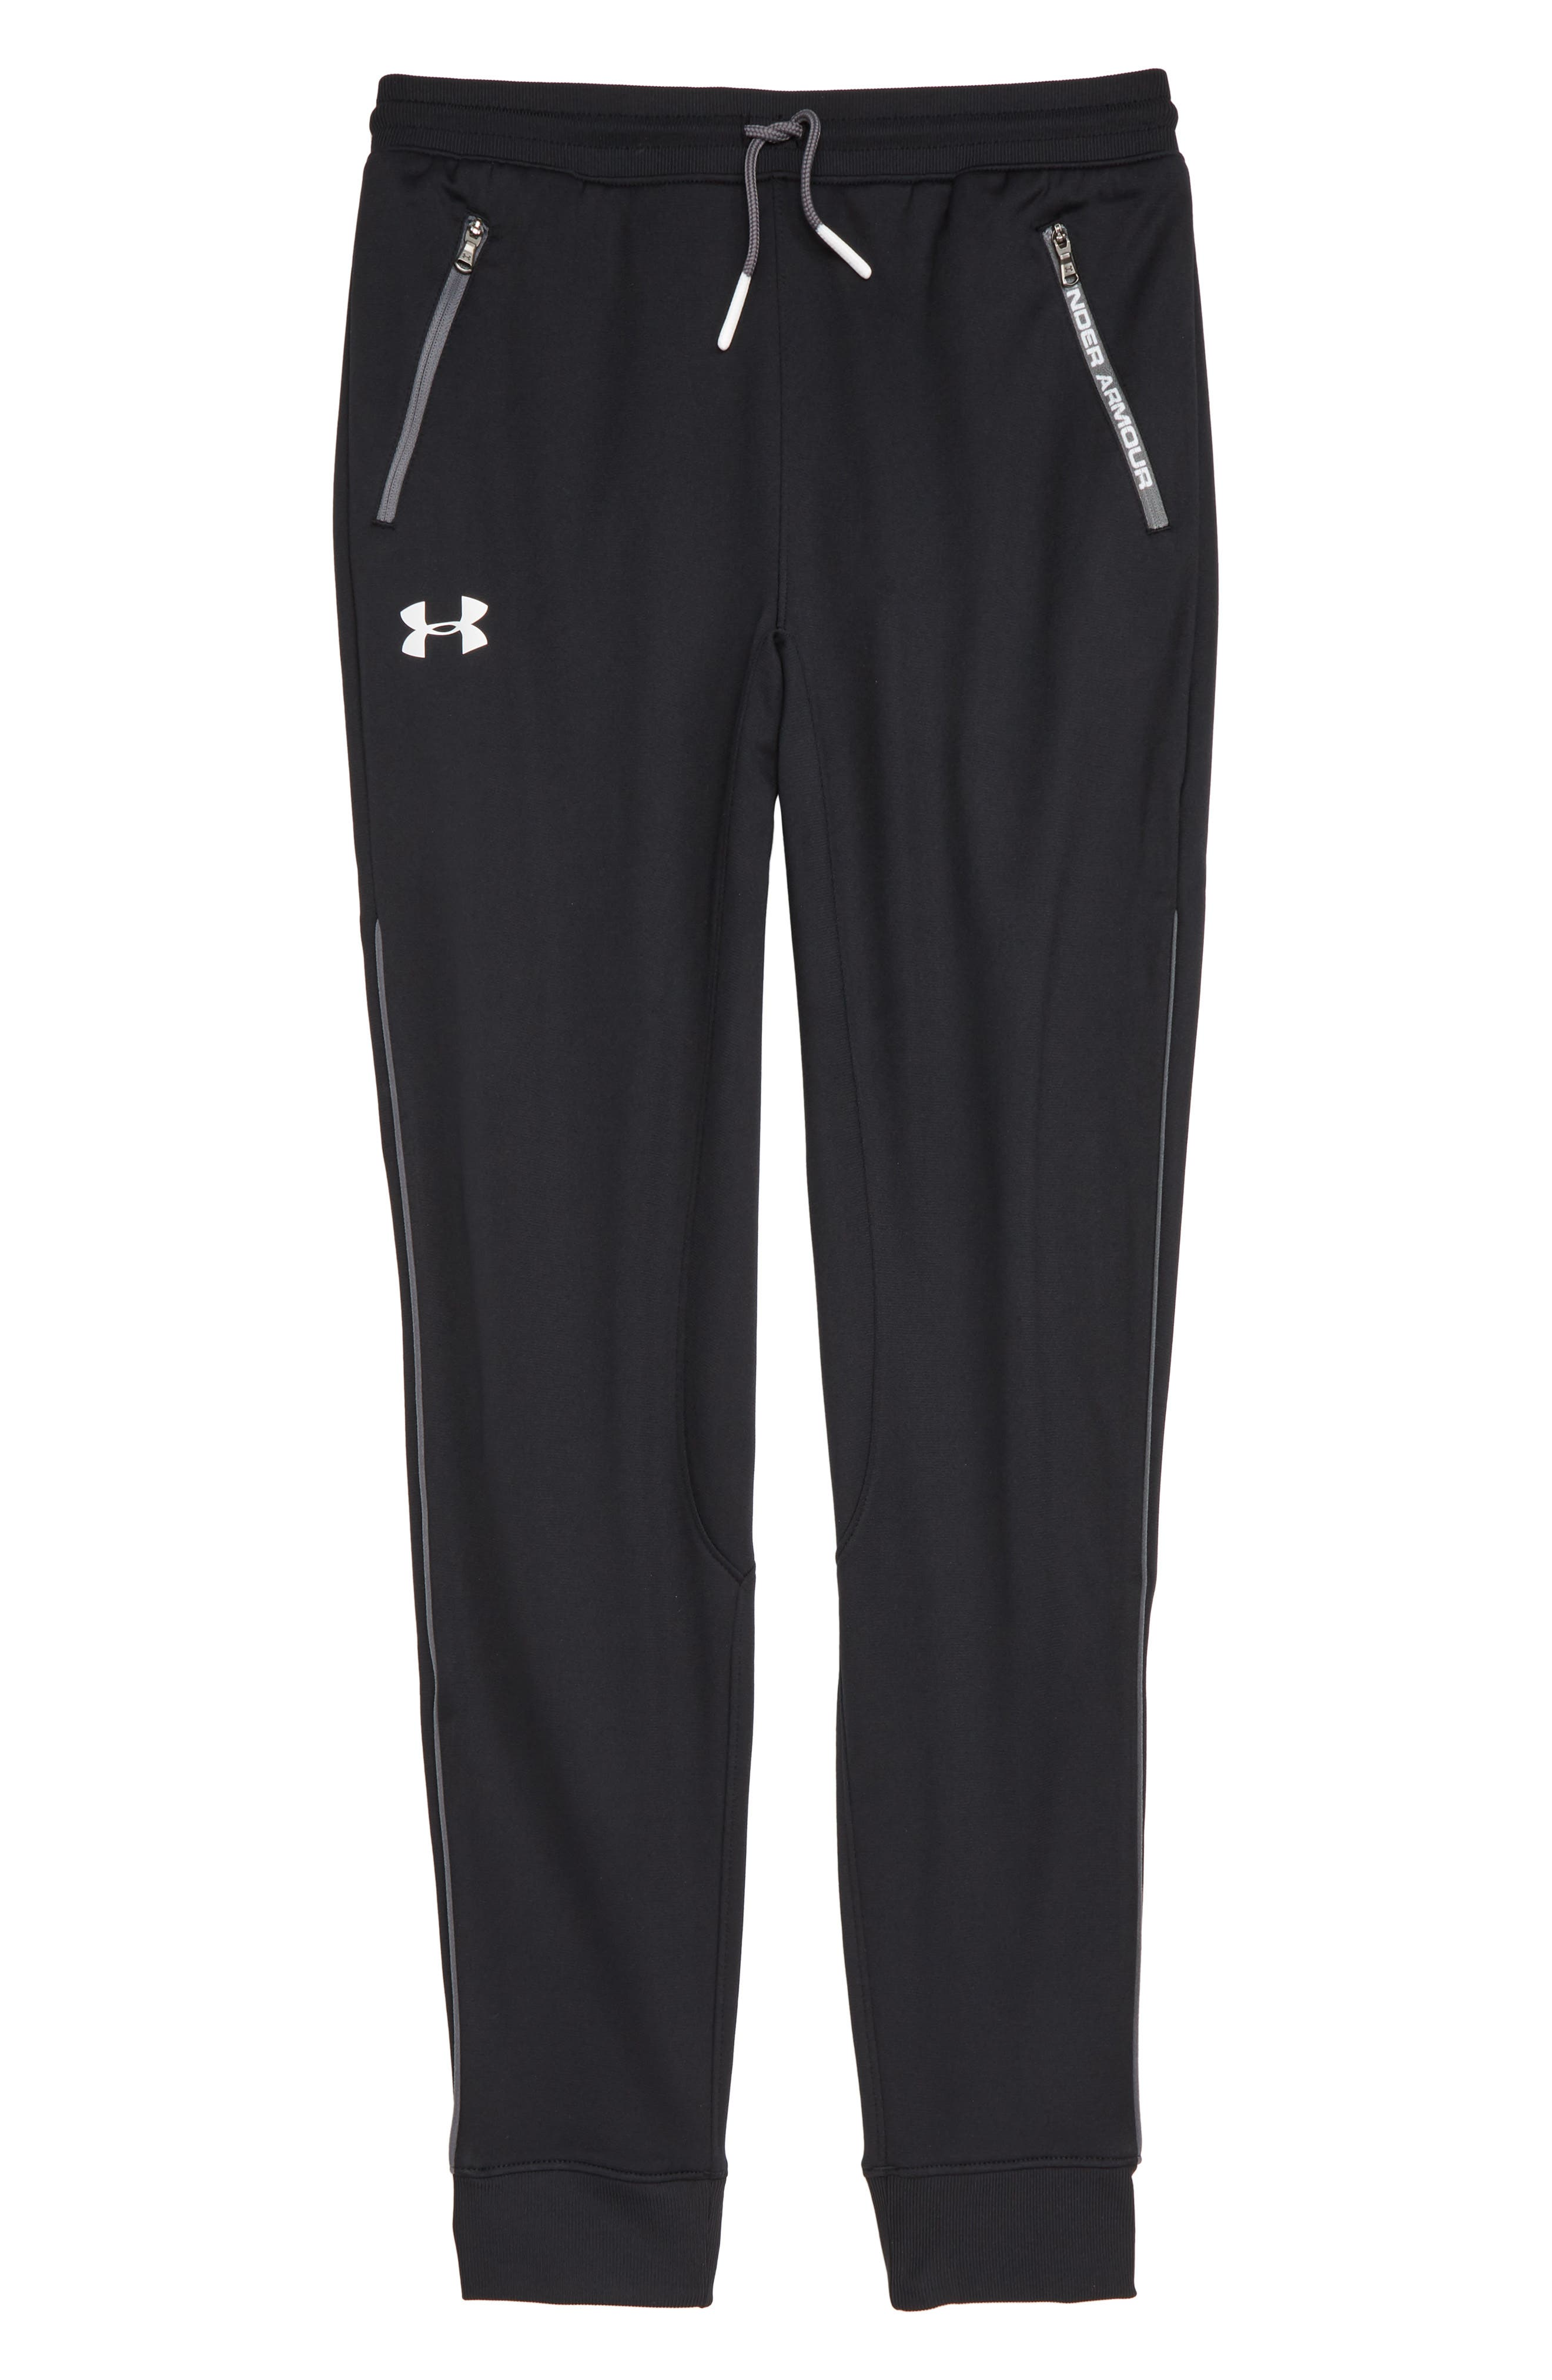 UNDER ARMOUR, Pennant Tapered Sweatpants, Main thumbnail 1, color, BLACK / / WHITE